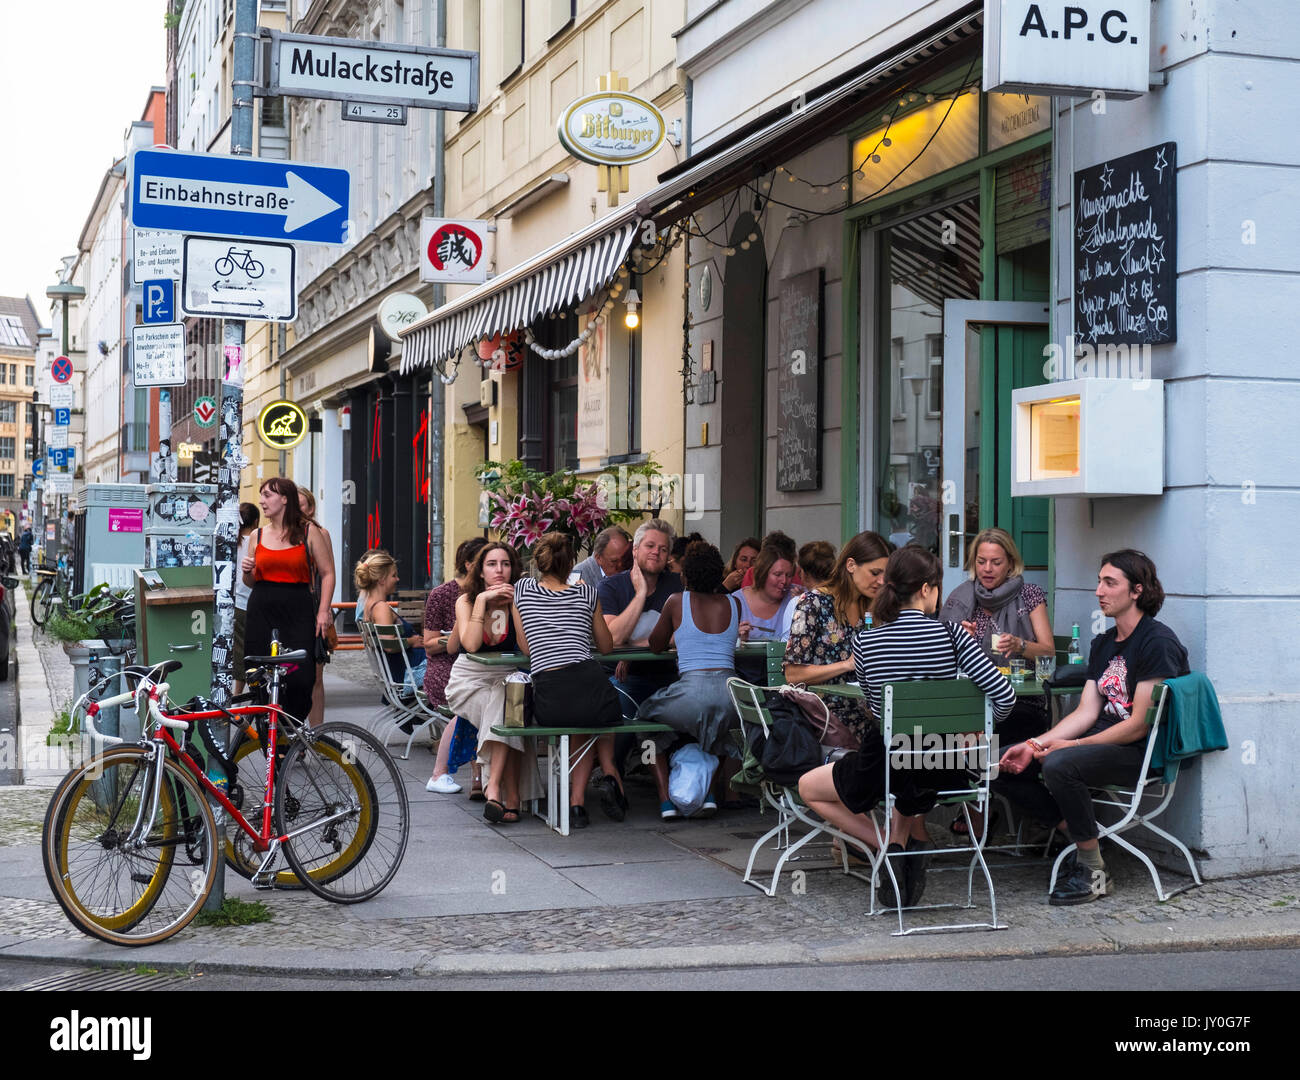 Exterior of APC Italian restaurant in fashionable Mitte district of Berlin, Germany - Stock Image